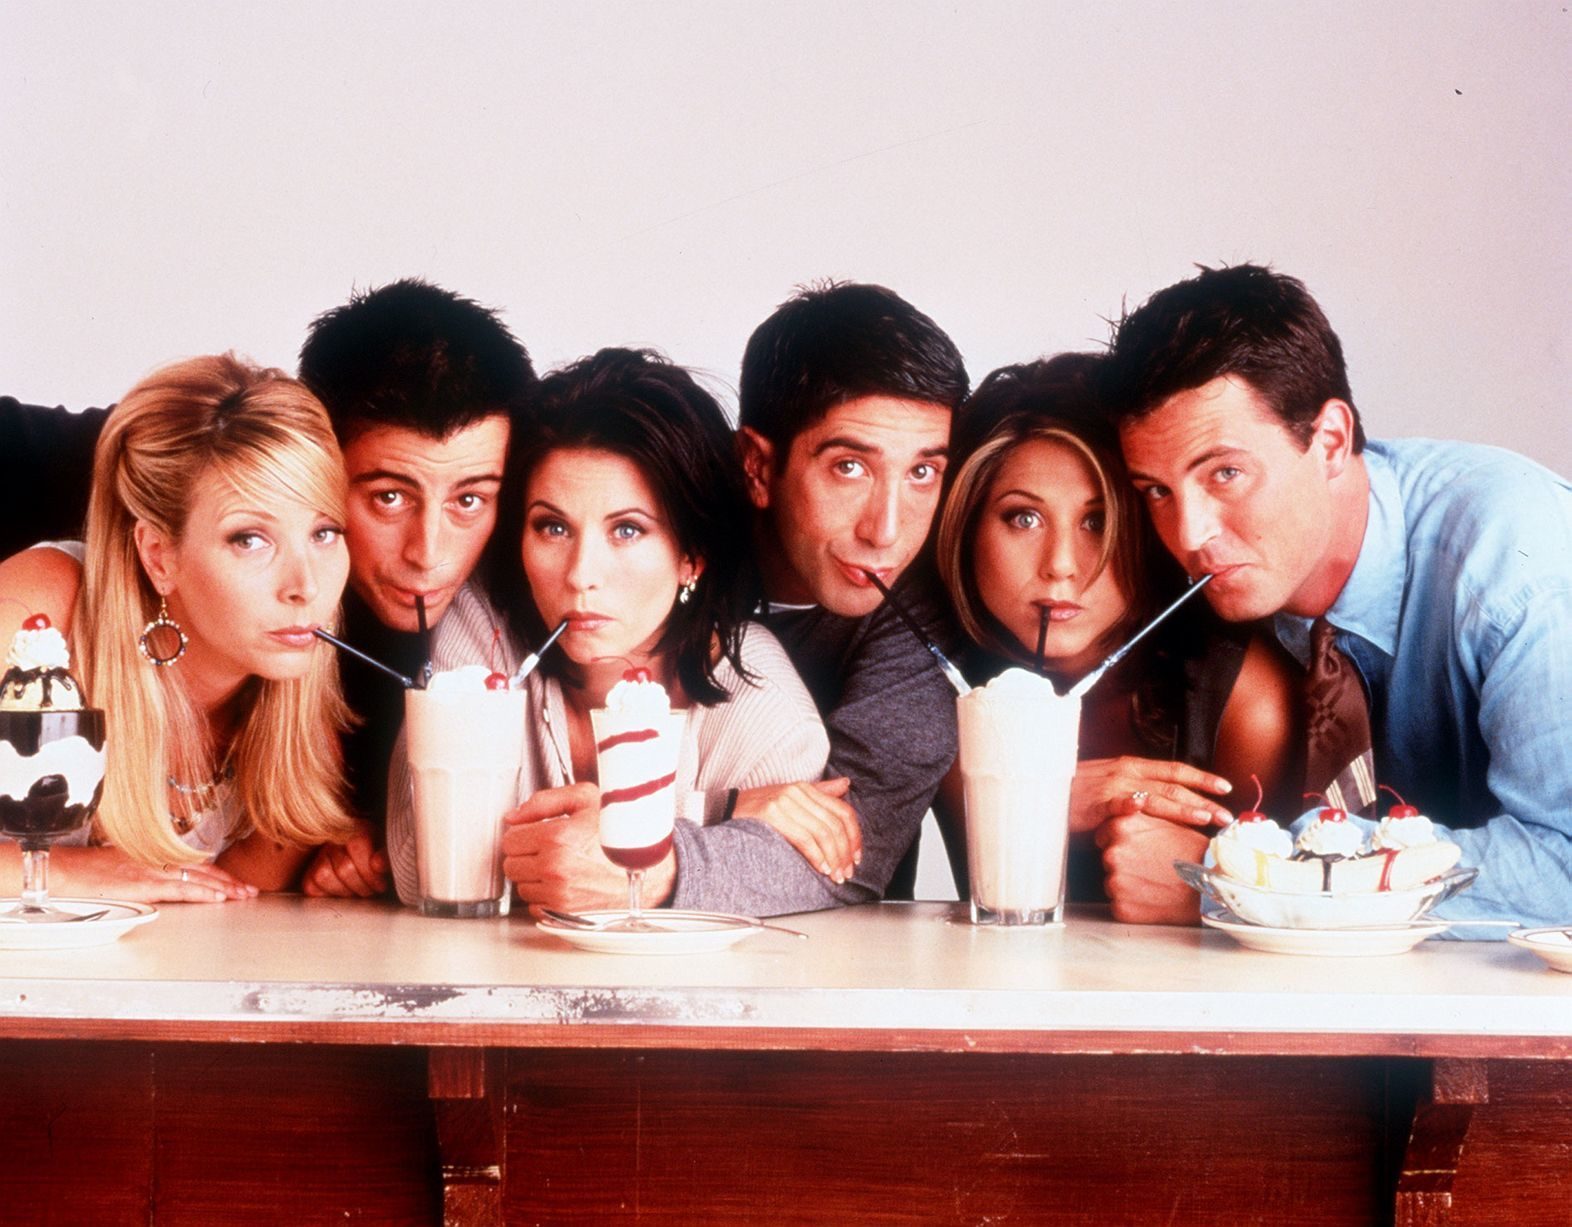 The One Where they Go to a Friends Quiz